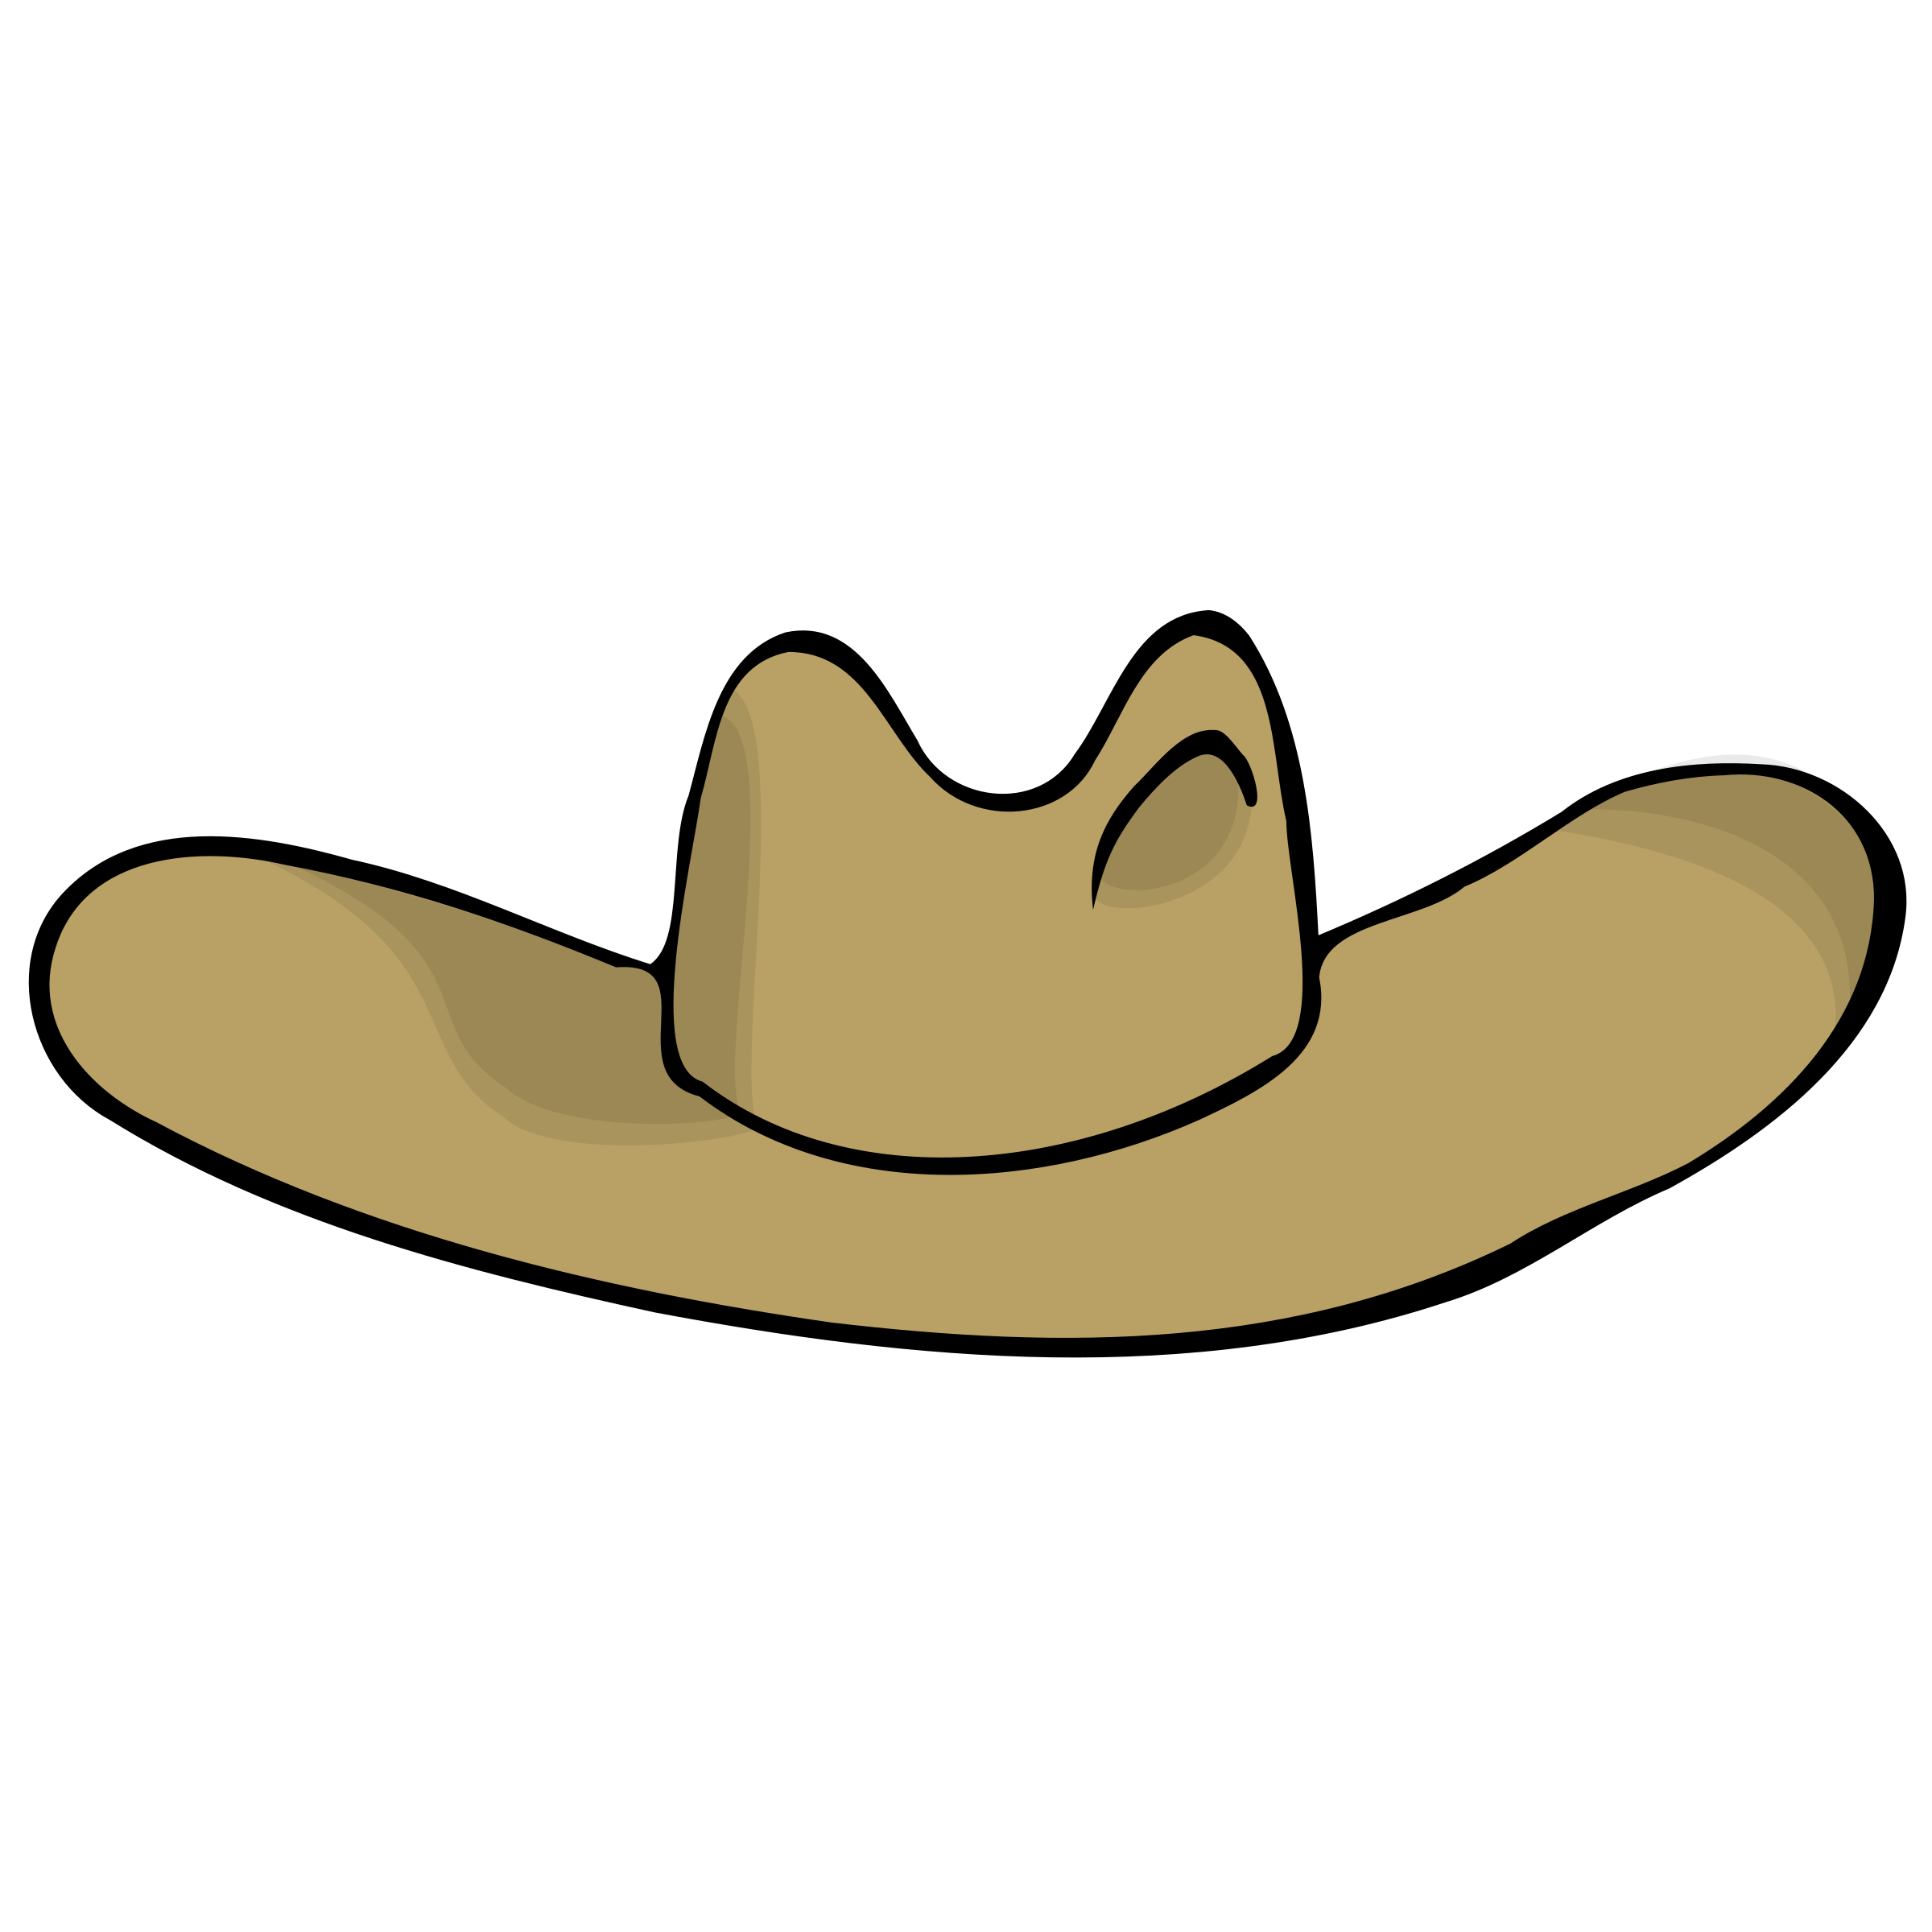 Cowboy hat by nicubunu